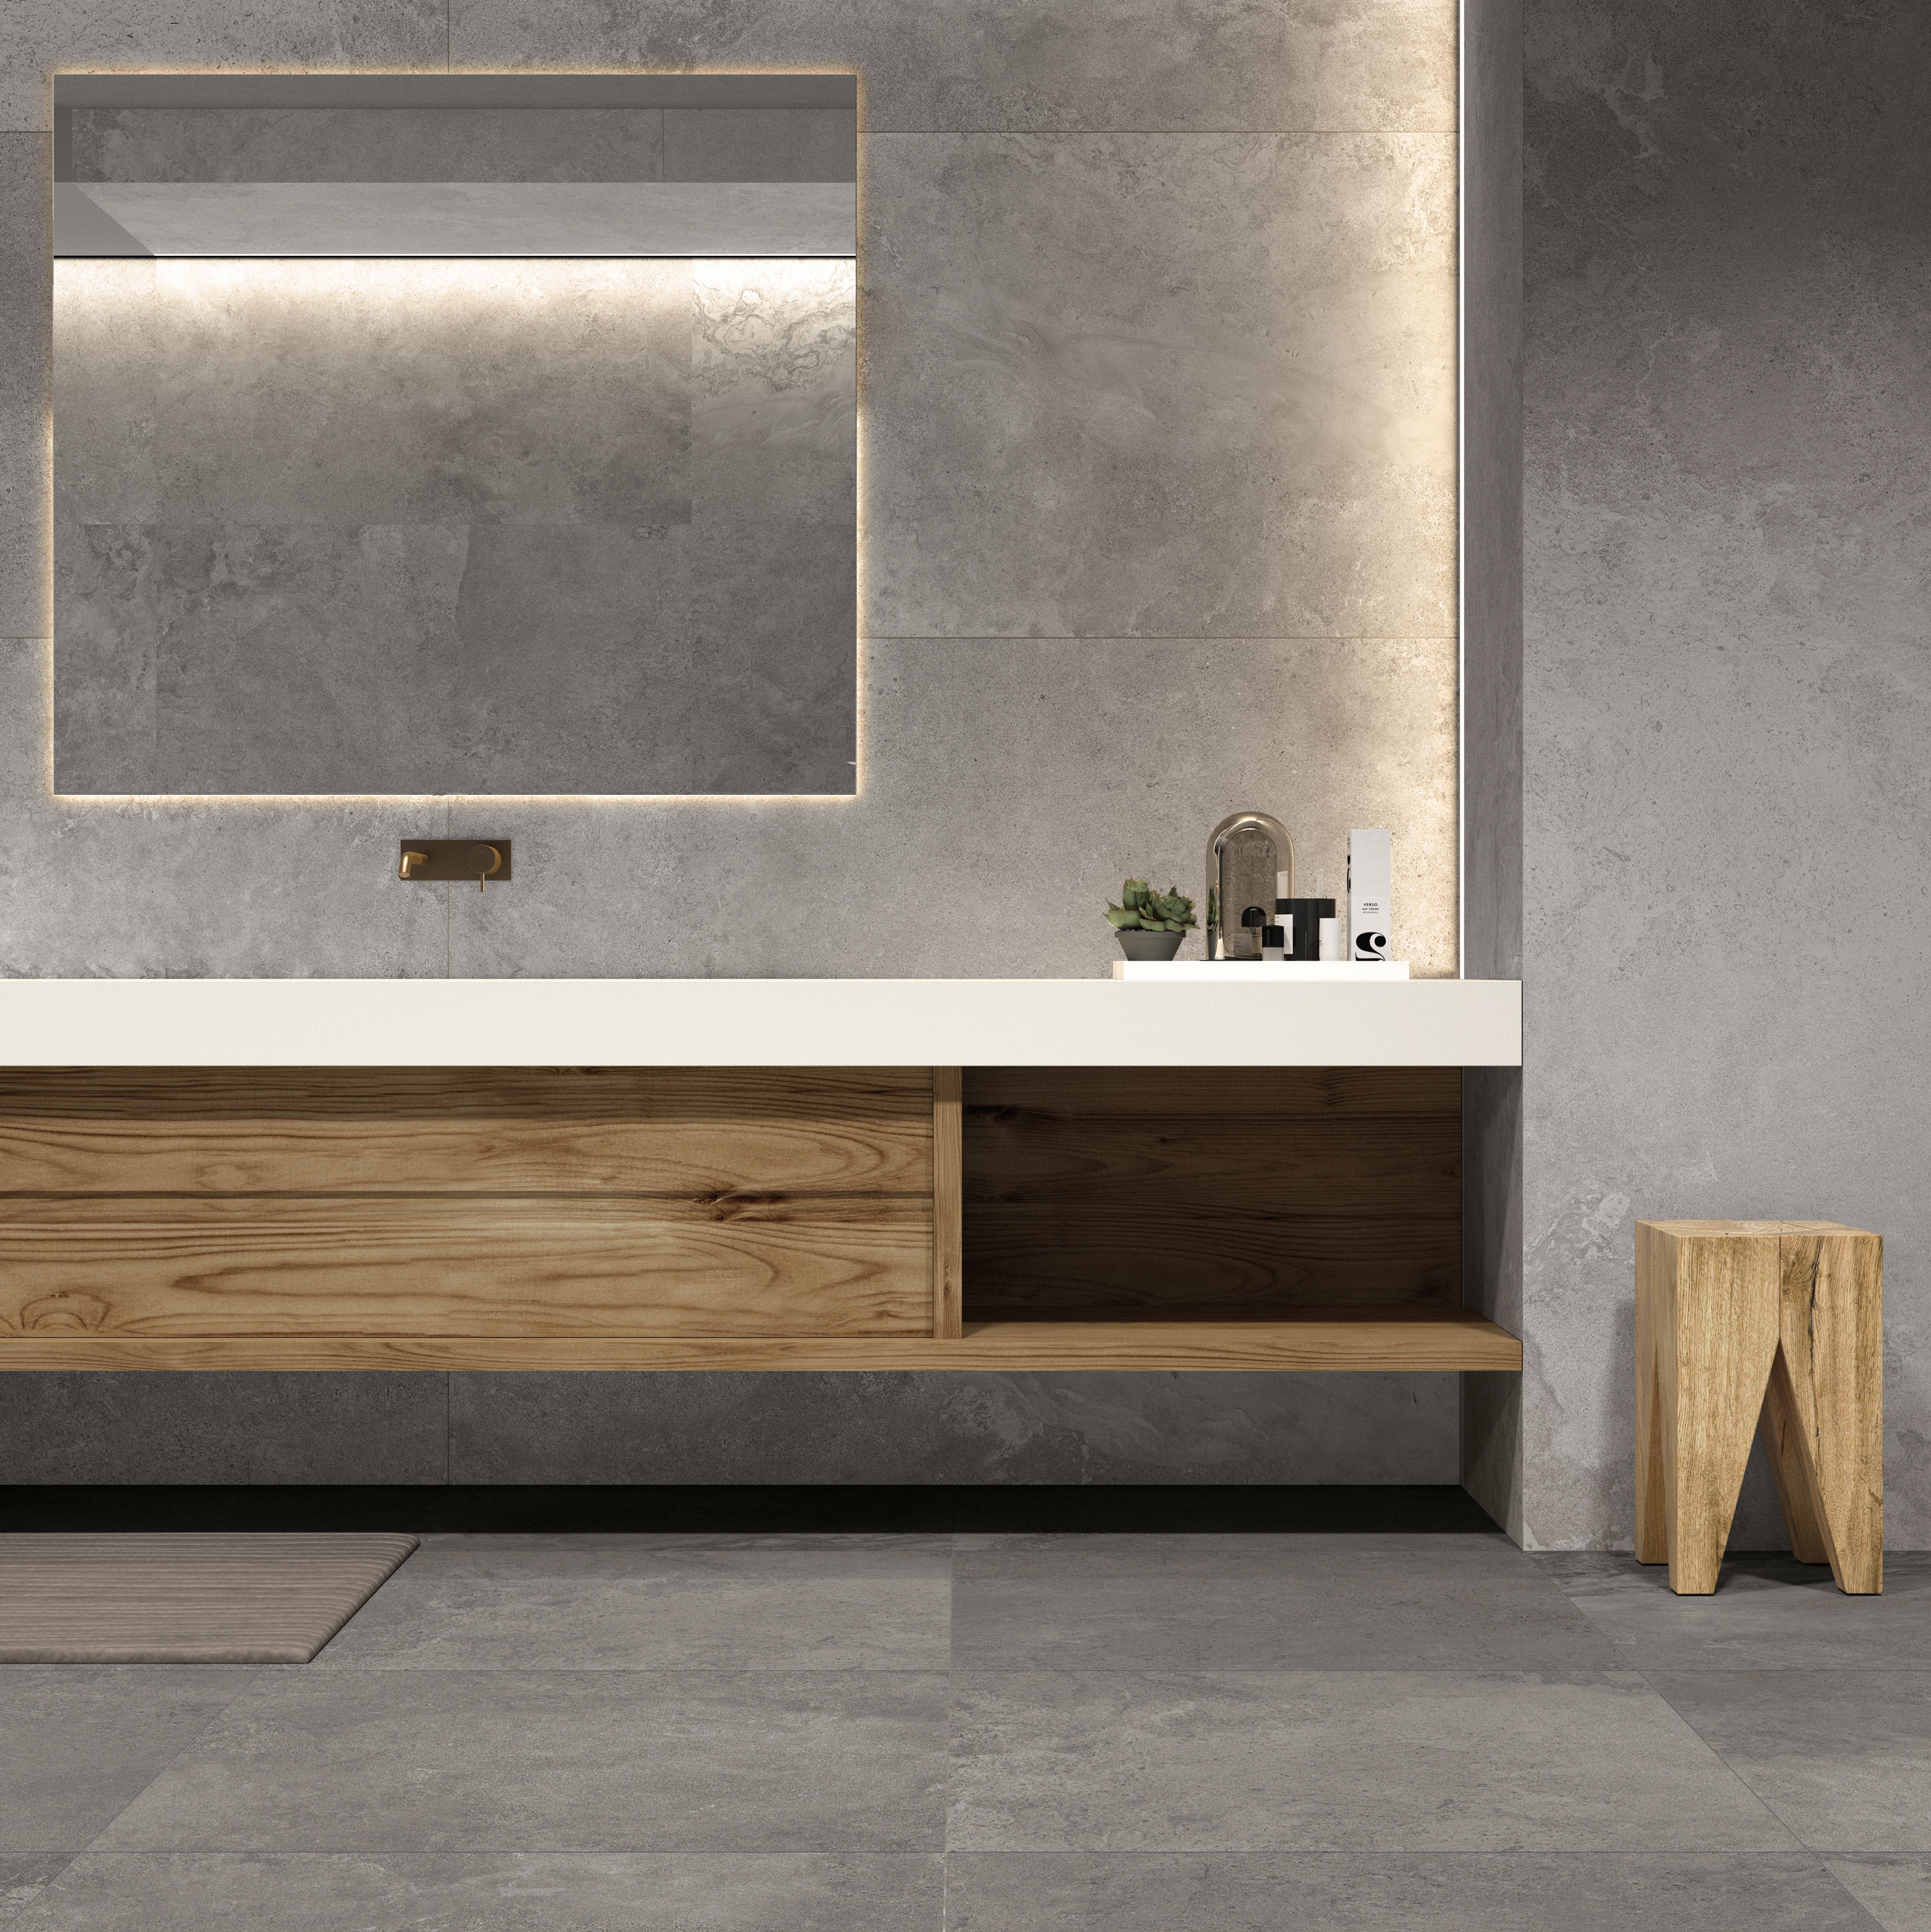 Alpes Raw Grey Floor Tiles From Abk Group Architonic